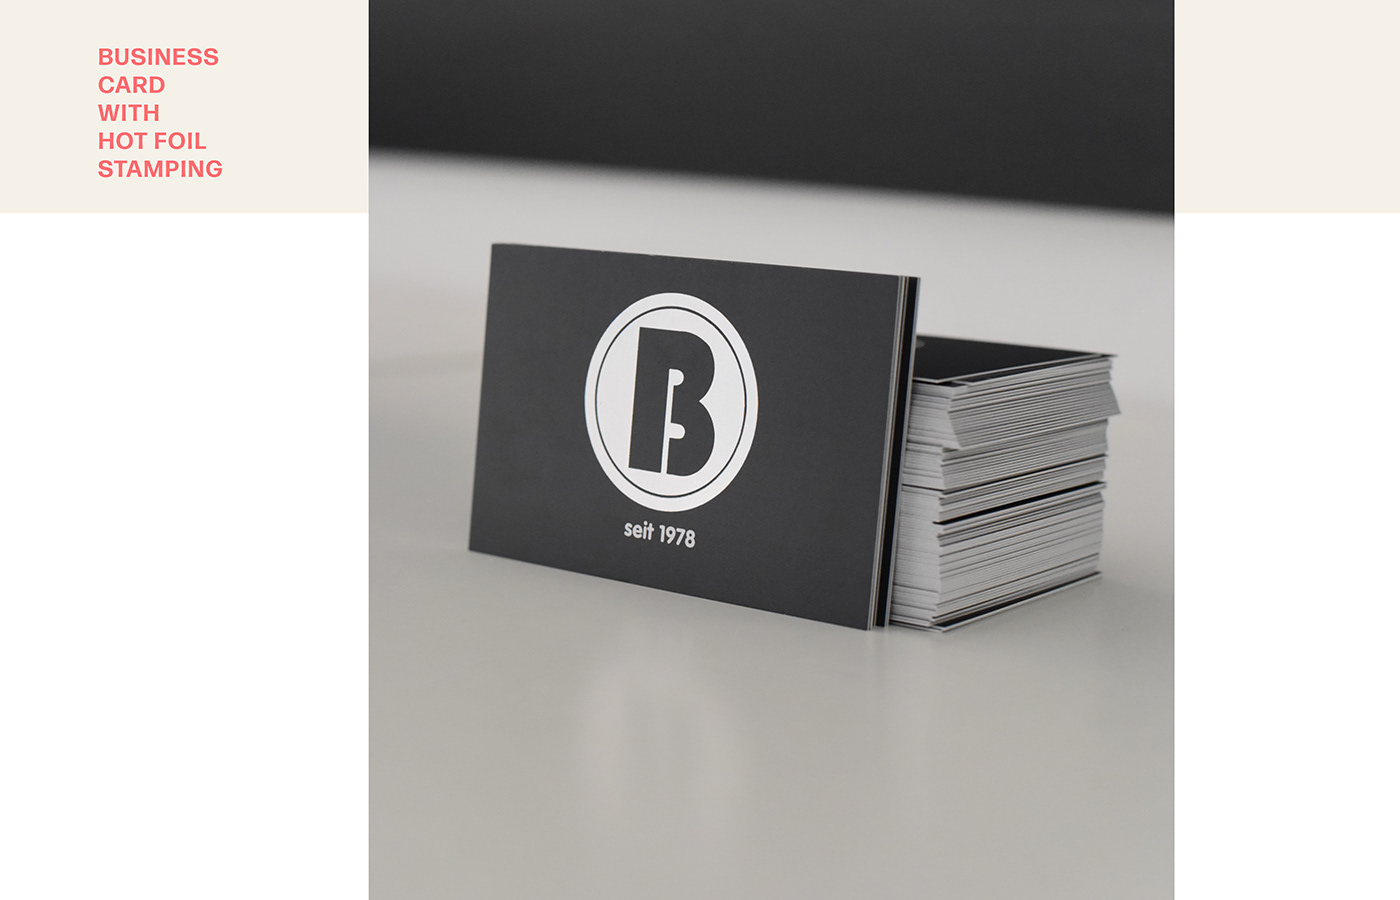 business card dark grey exclusive printing finishing technoloy Hot Foil Stamping interior company Matt Silver